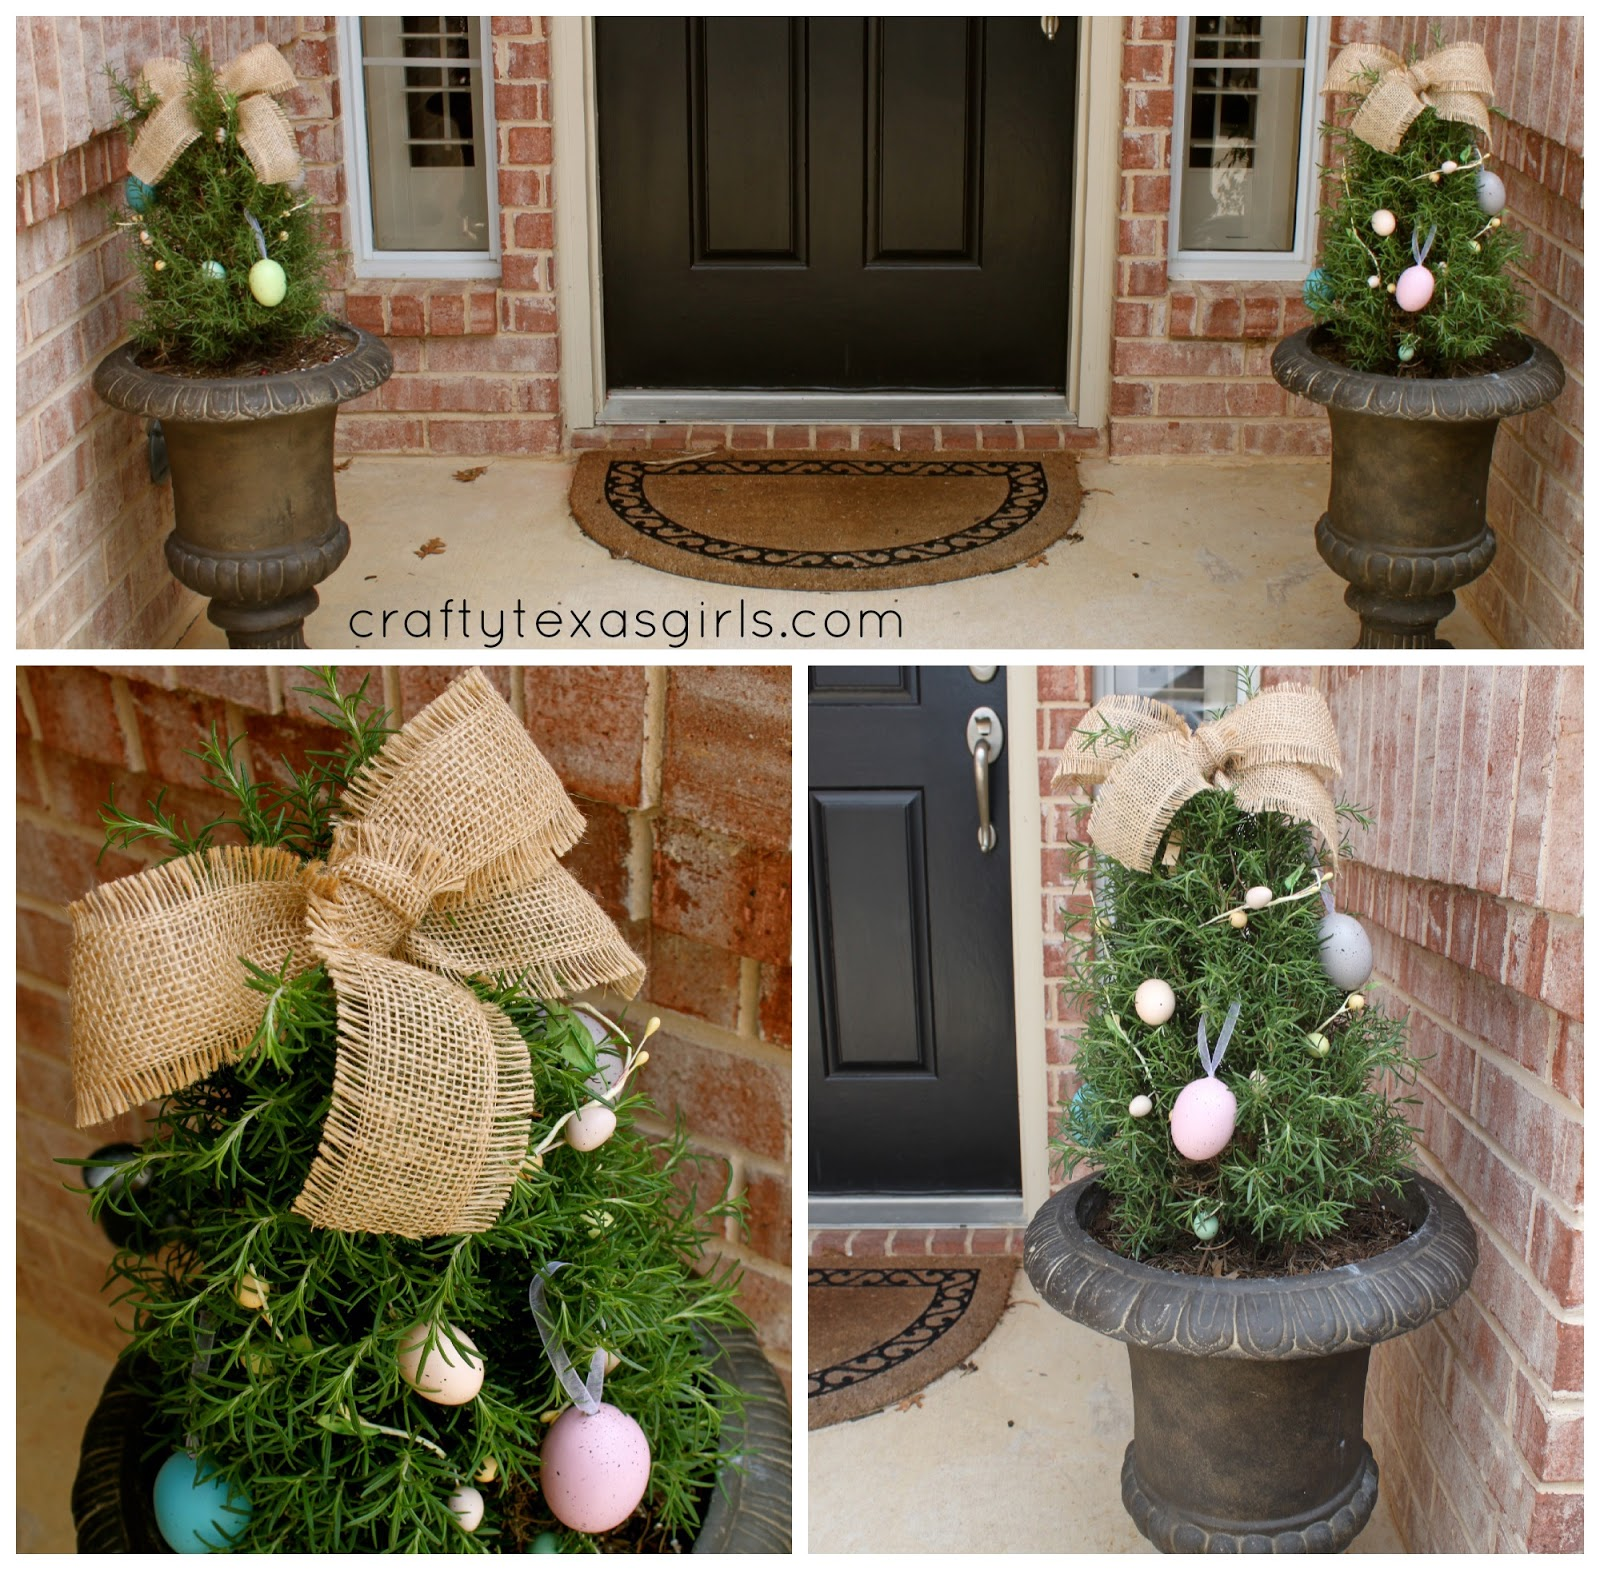 Crafty Texas Girls: Craft It: Easter Decor for the Front Door